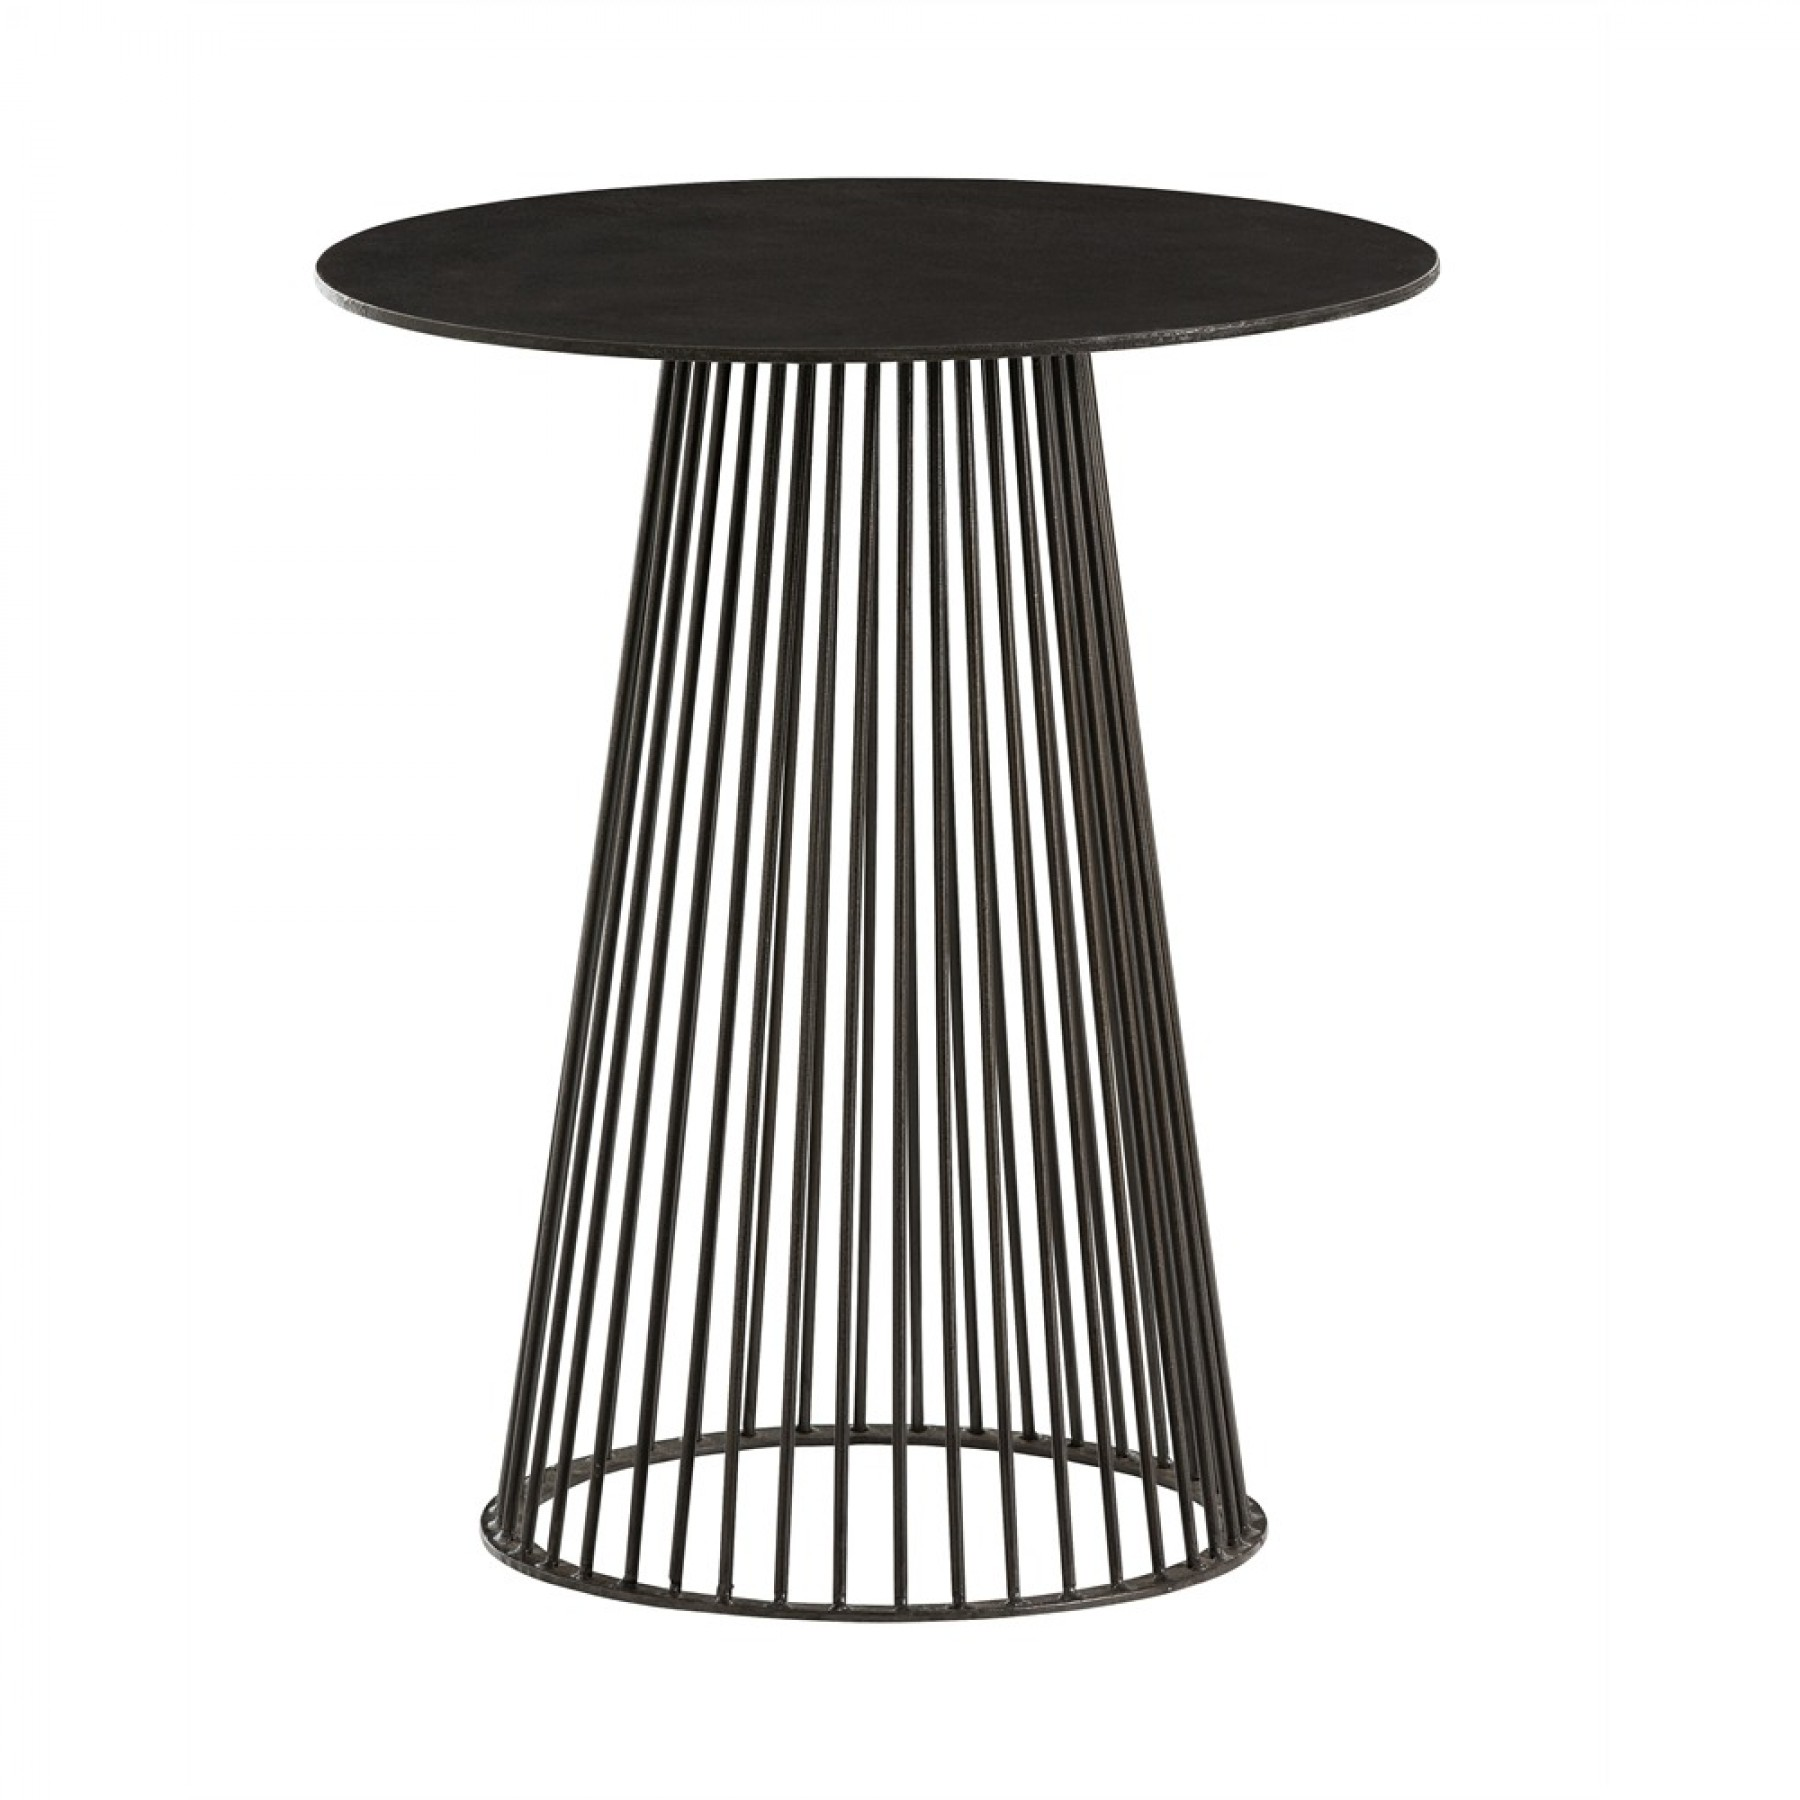 lou accent table gray round dining room chairs with arms small decorative chest drawers black linen tablecloth pretty lamps for bedroom pier one imports patio furniture curtains